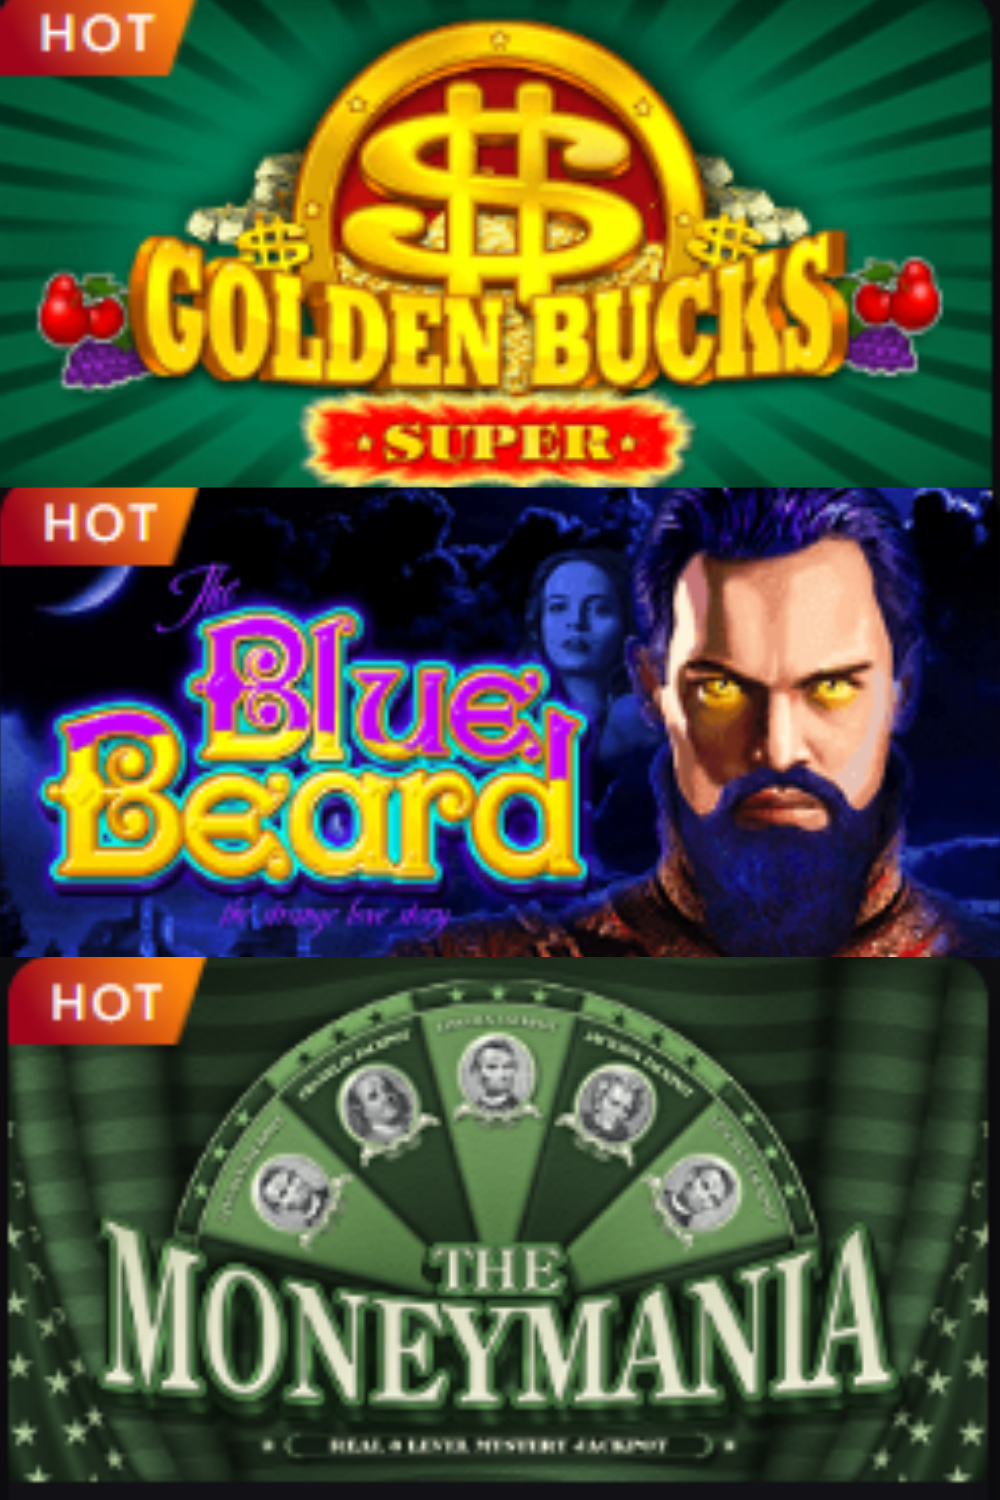 Play Fun Bitcoin games of skill and Earn Other than from